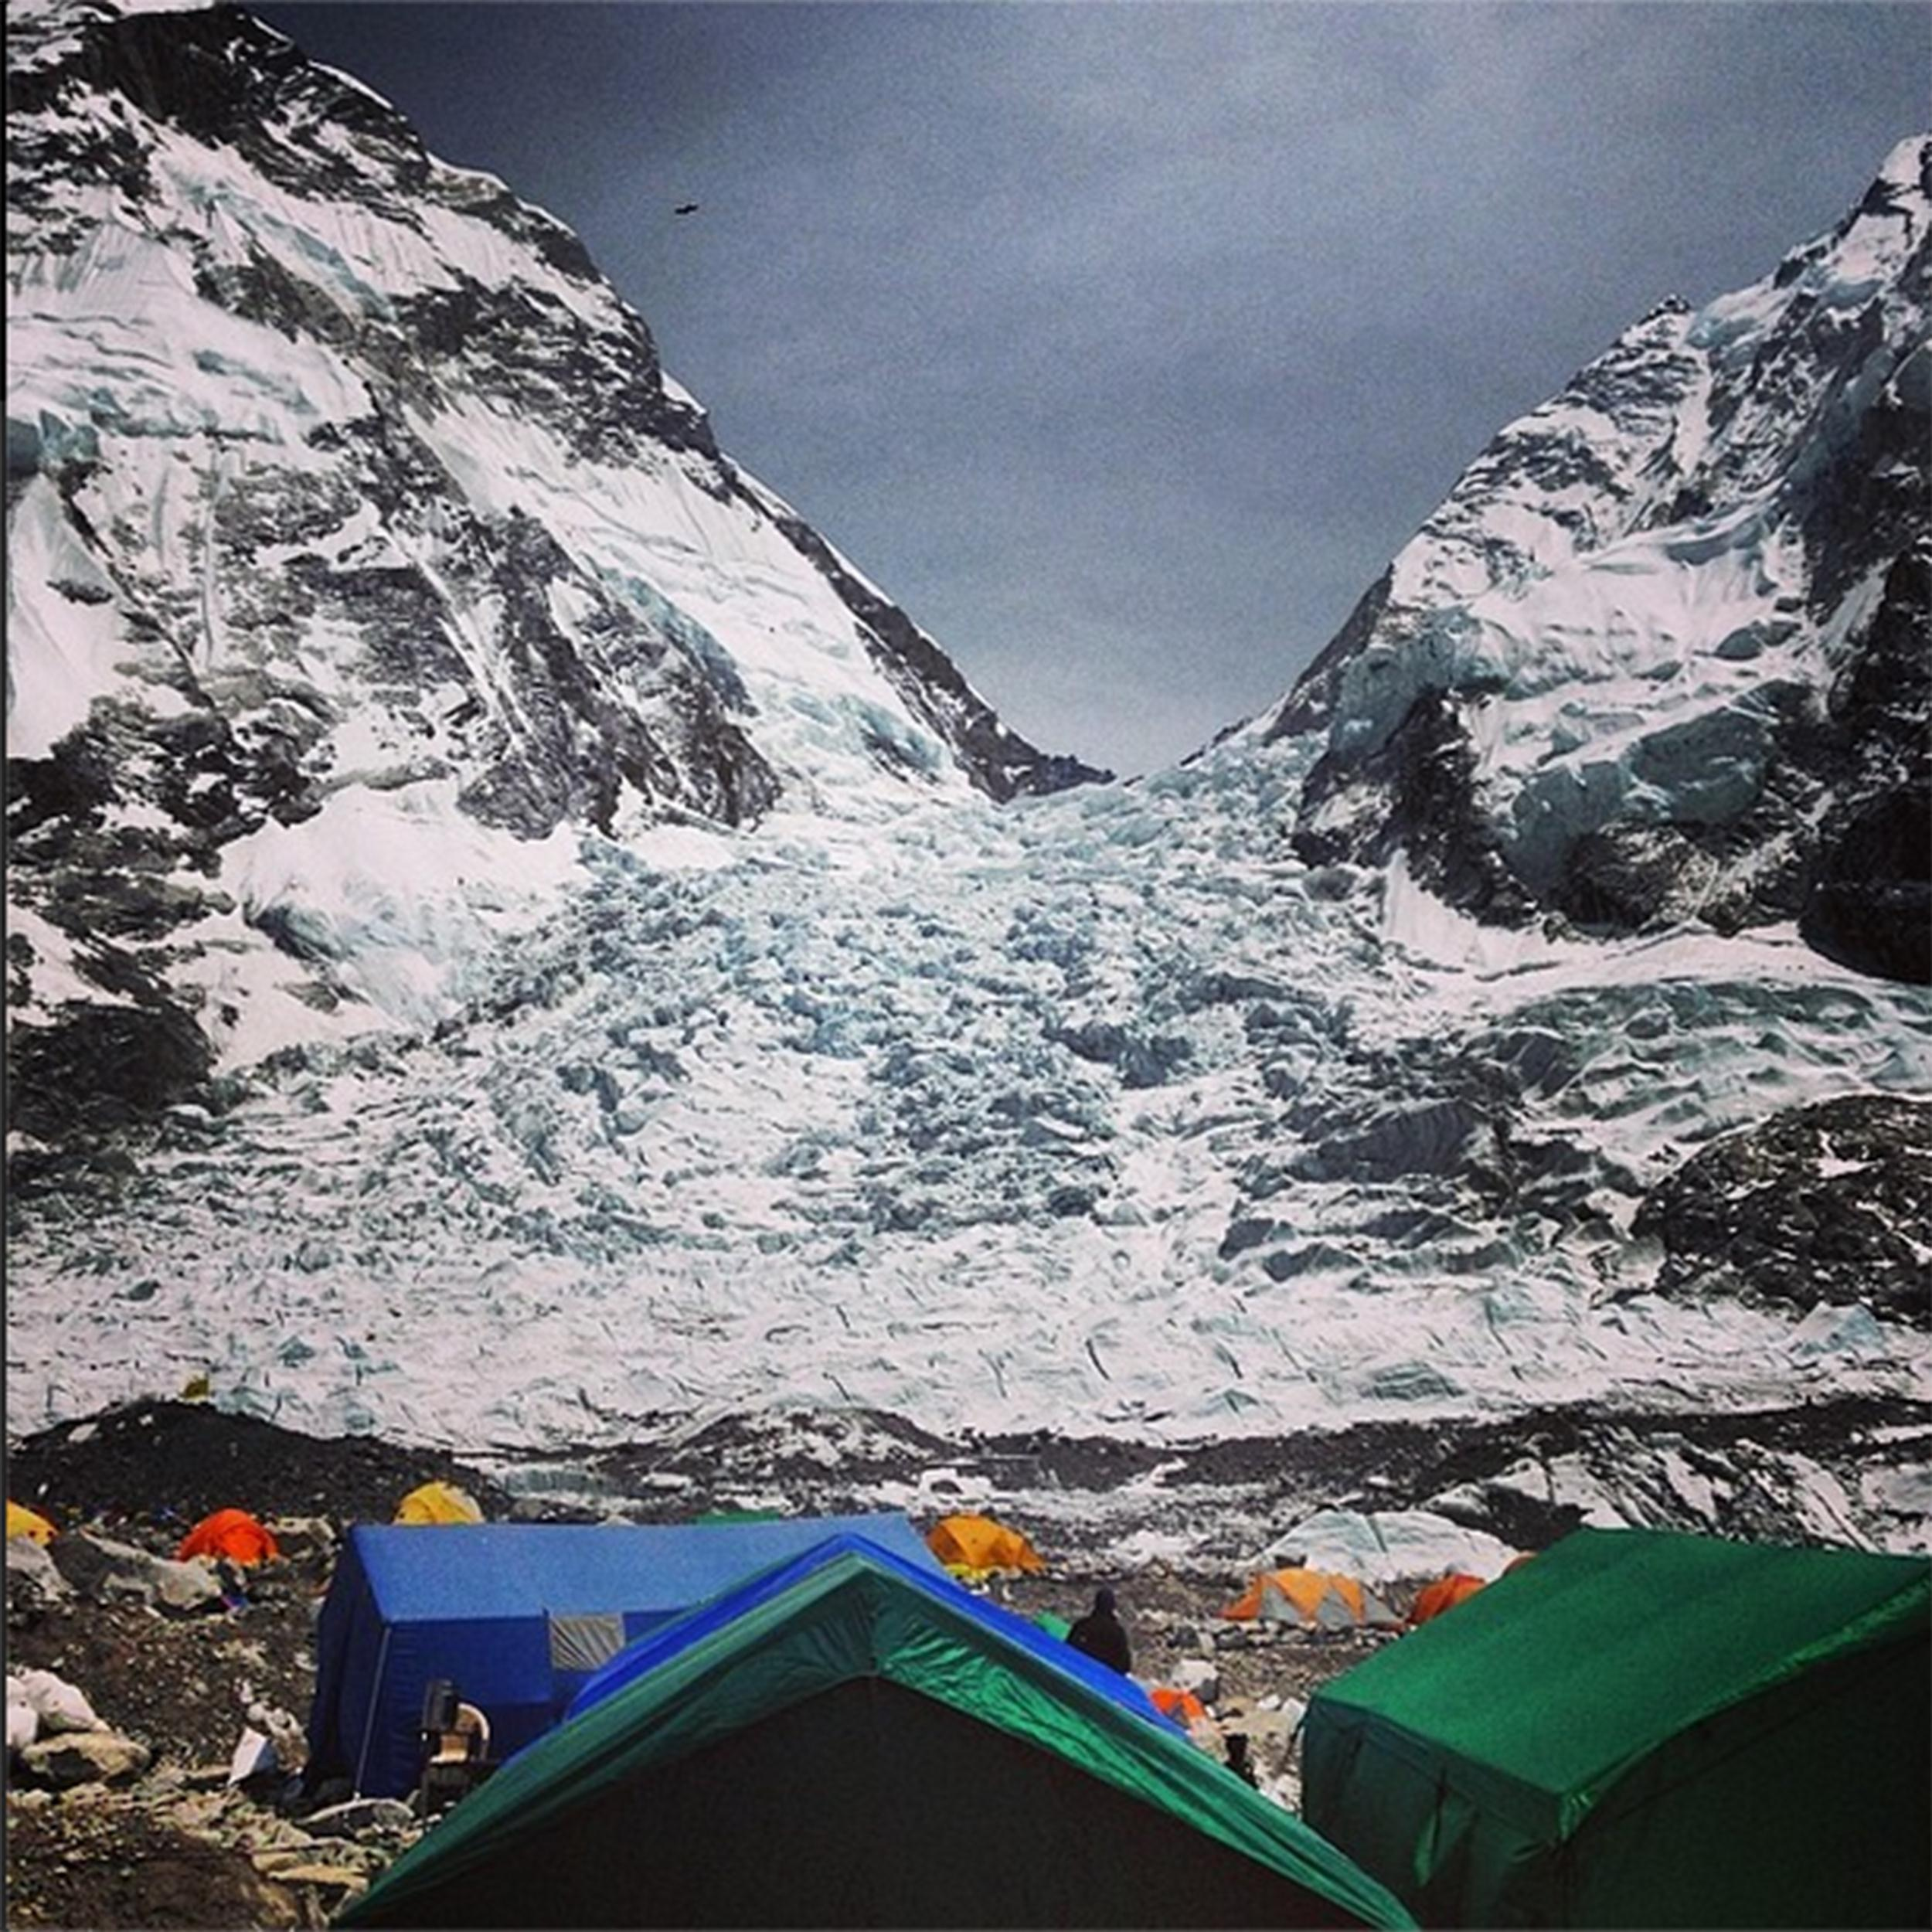 The icefall at Mount Everest where up to 13 Sherpas were reportedly killed in an avalanche